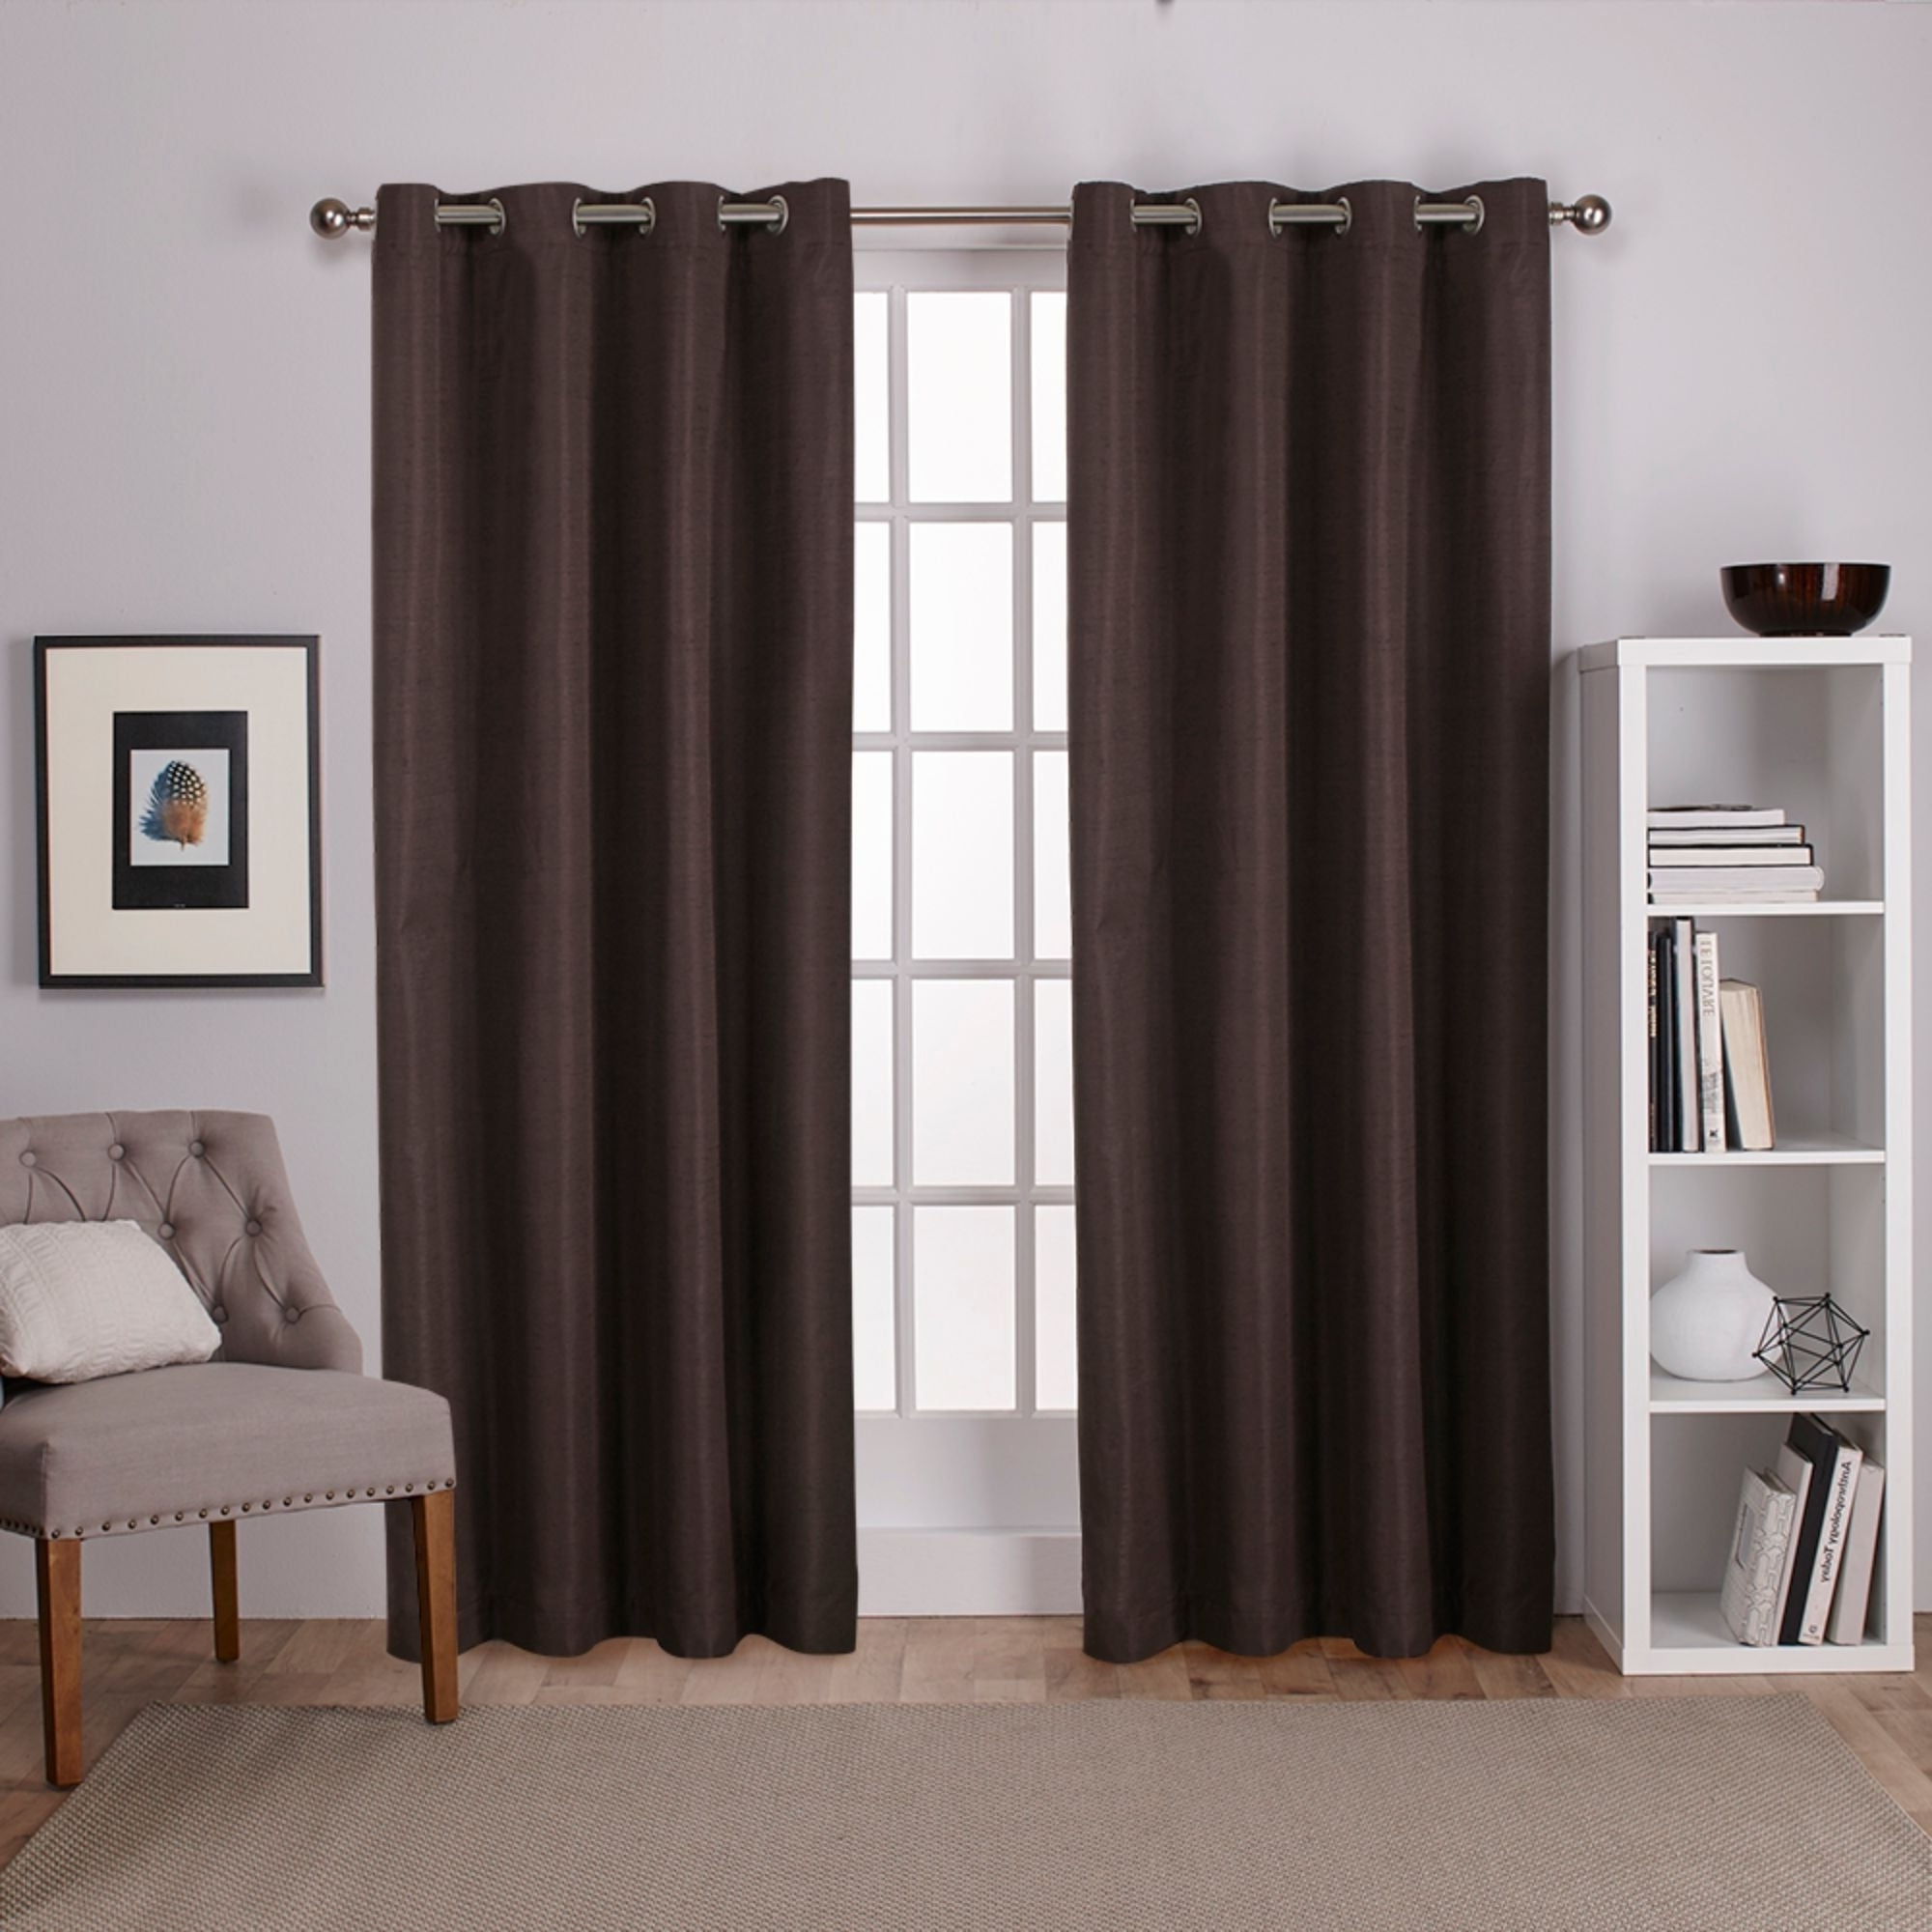 Raw Silk Thermal Insulated Grommet Top Curtain Panel Pairs Pertaining To Current Porch & Den Patchen Raw Silk Thermal Insulated Grommet Top Curtain Panel Pair (View 3 of 20)